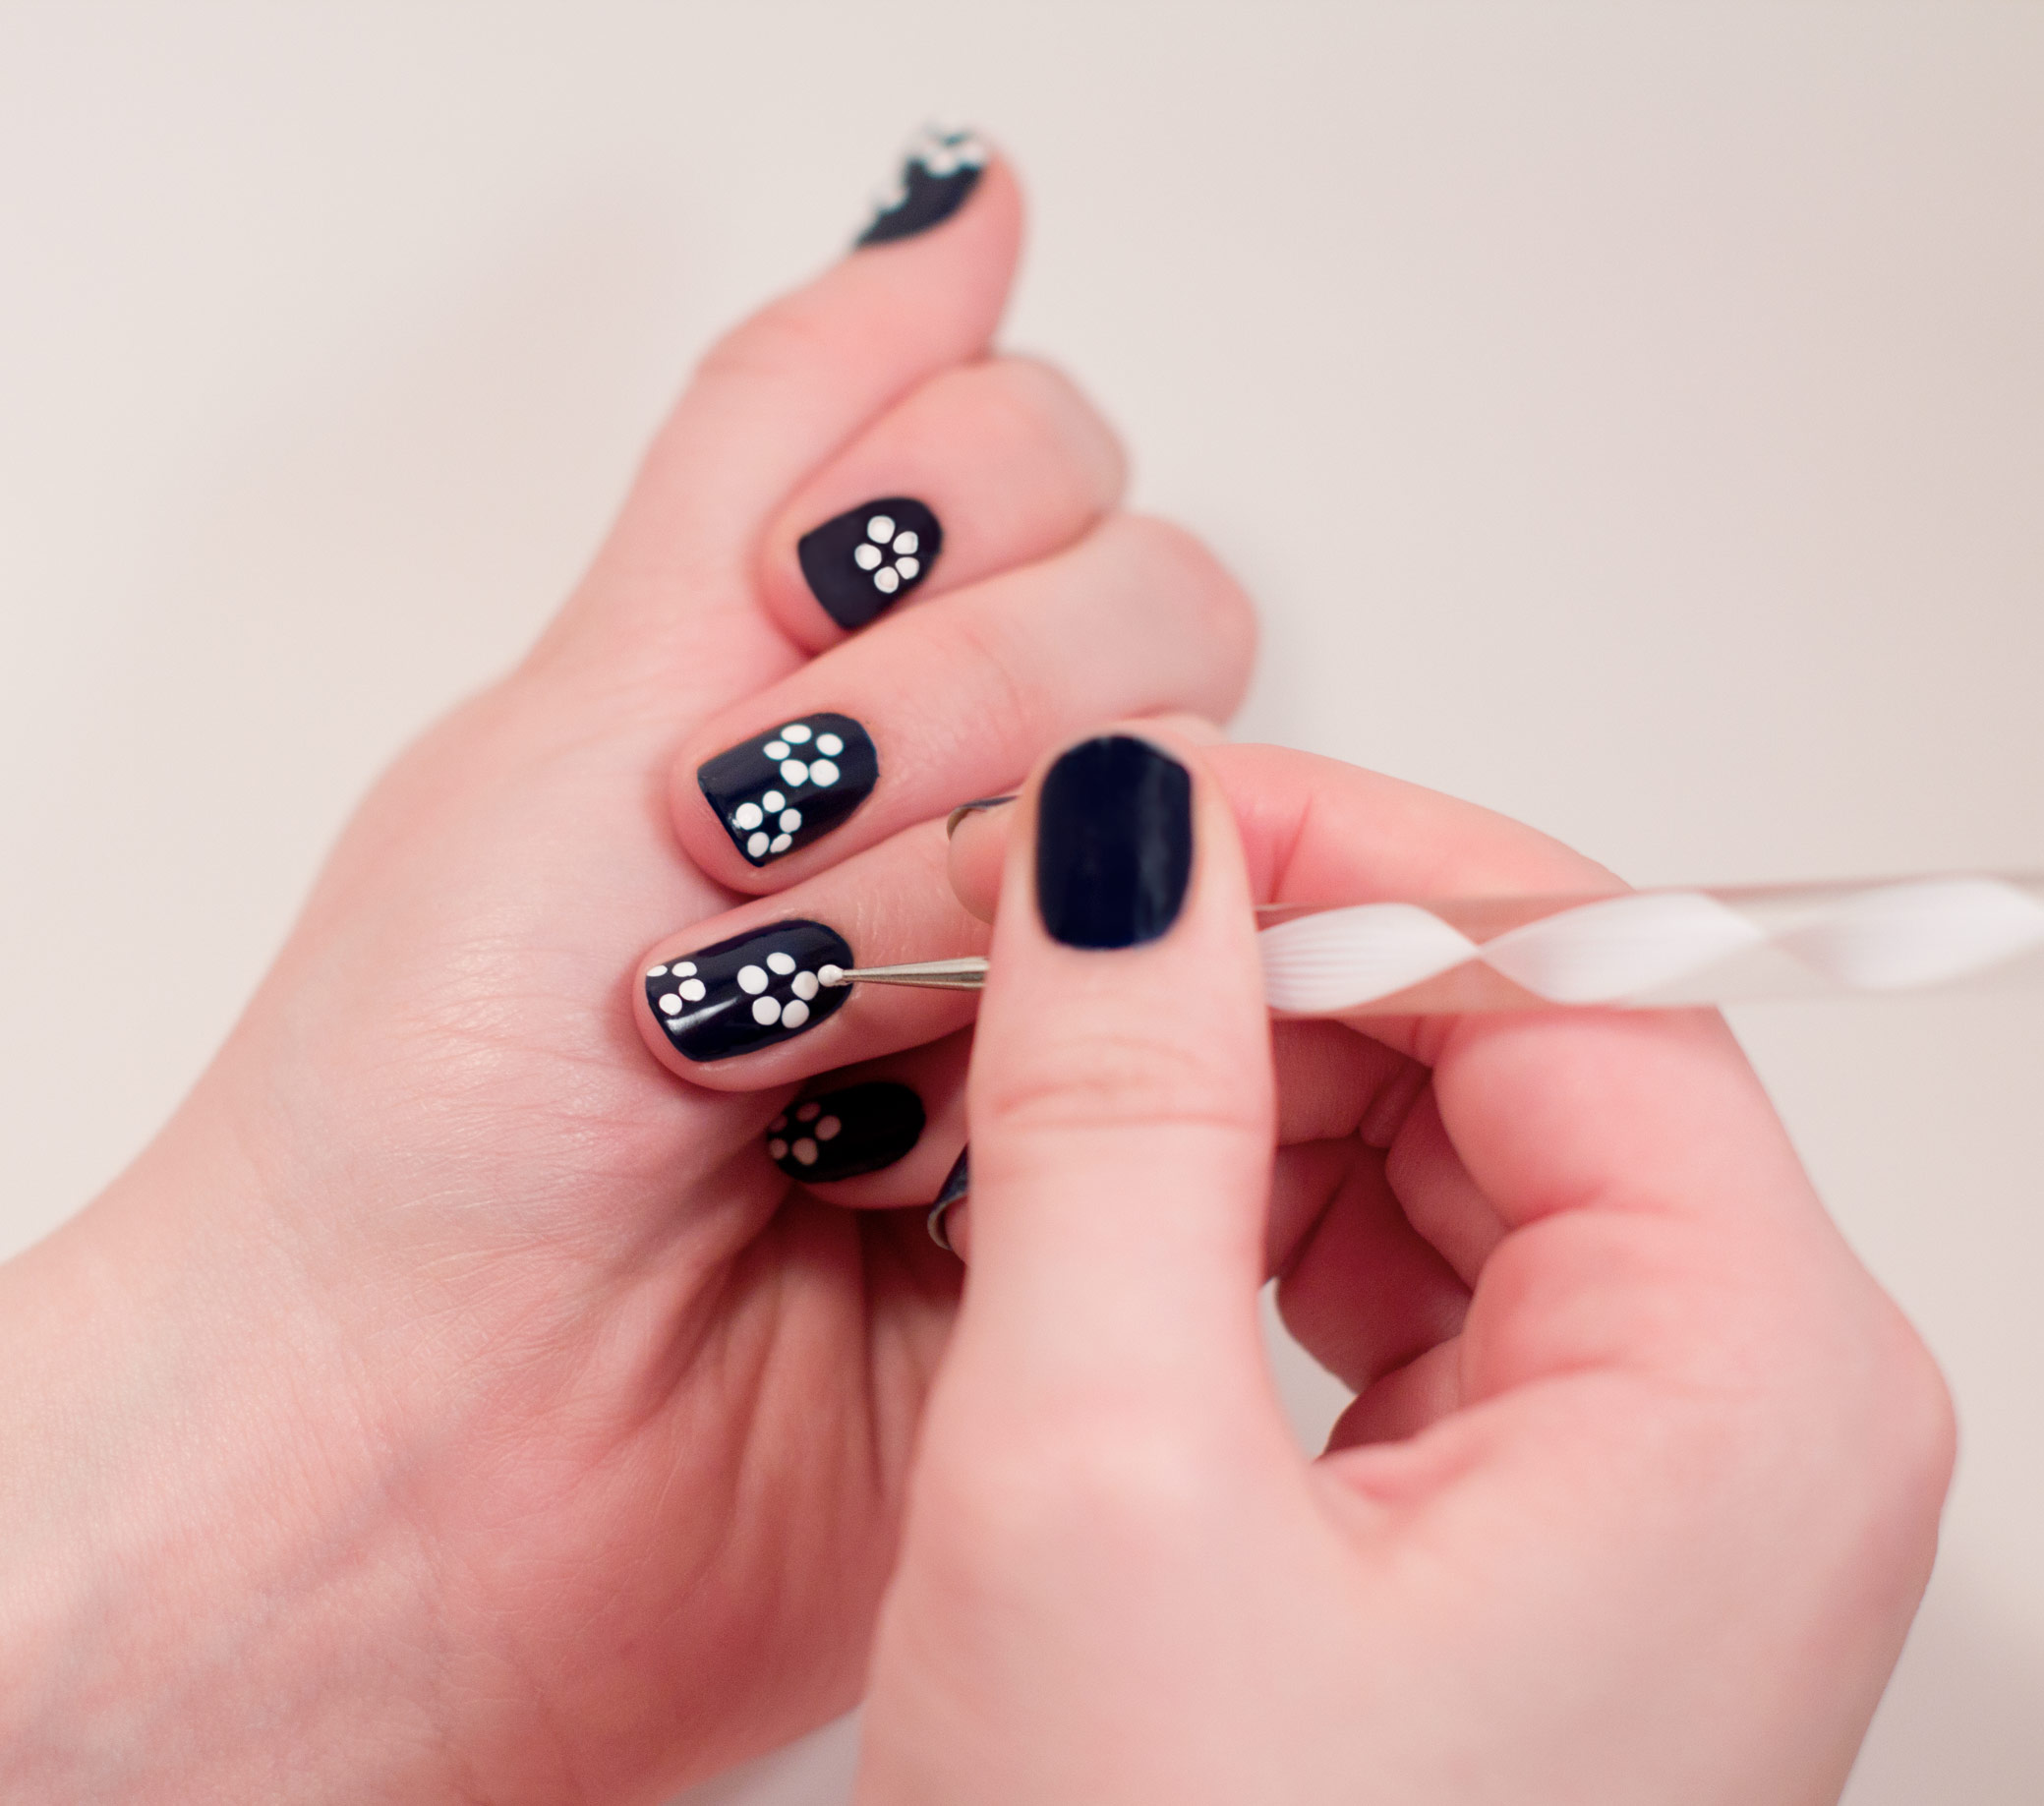 Nail art designs with a toothpick toothpick nail art nails nail designs using toothpicks simple design ideas view images prinsesfo Images